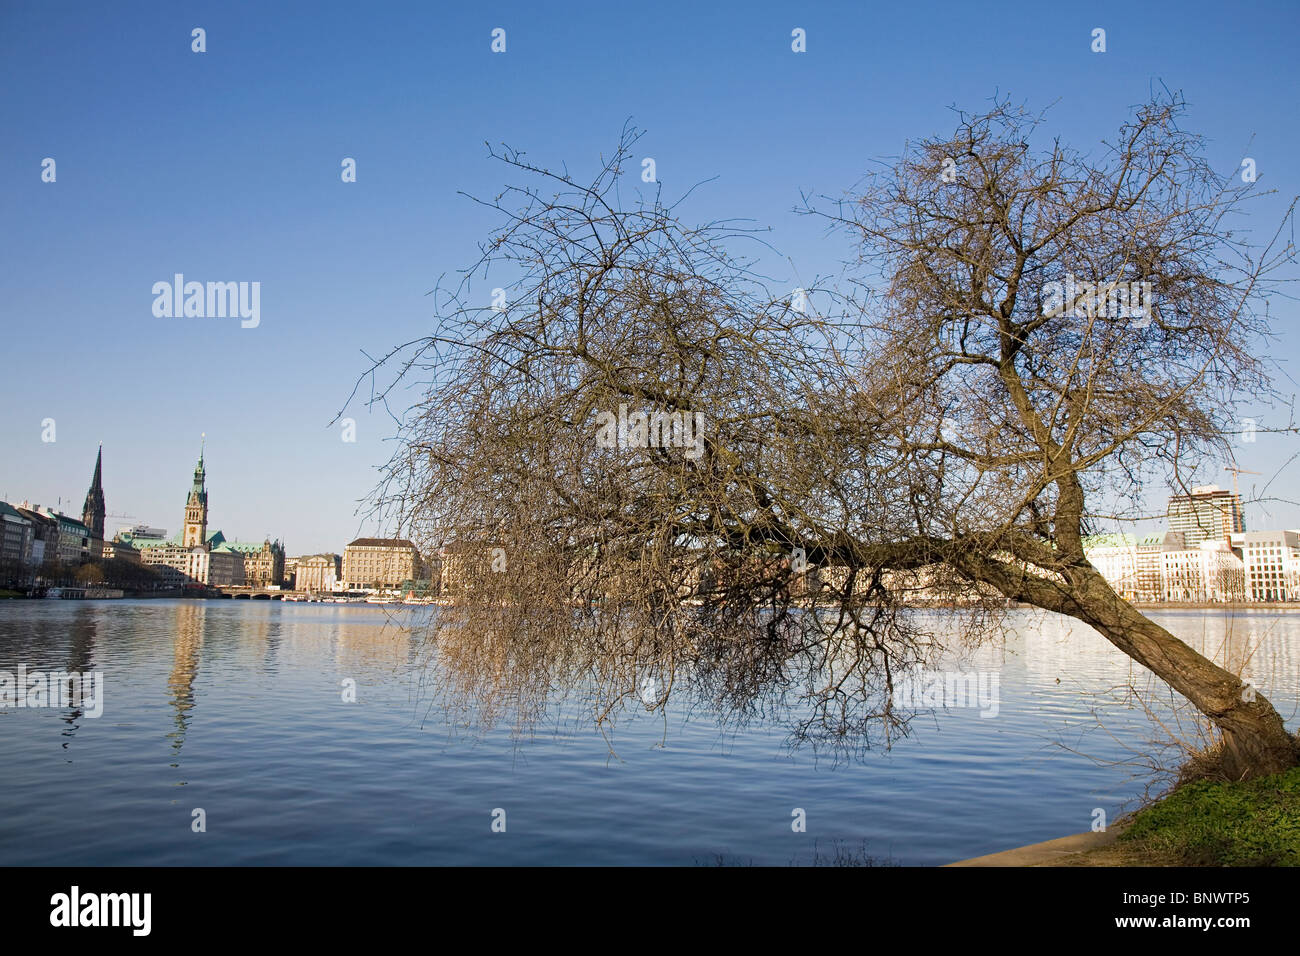 A willow tree leans over the Innen Alster Lake (Binnenalster) in the Neustadt District of Hamburg, Germany. - Stock Image